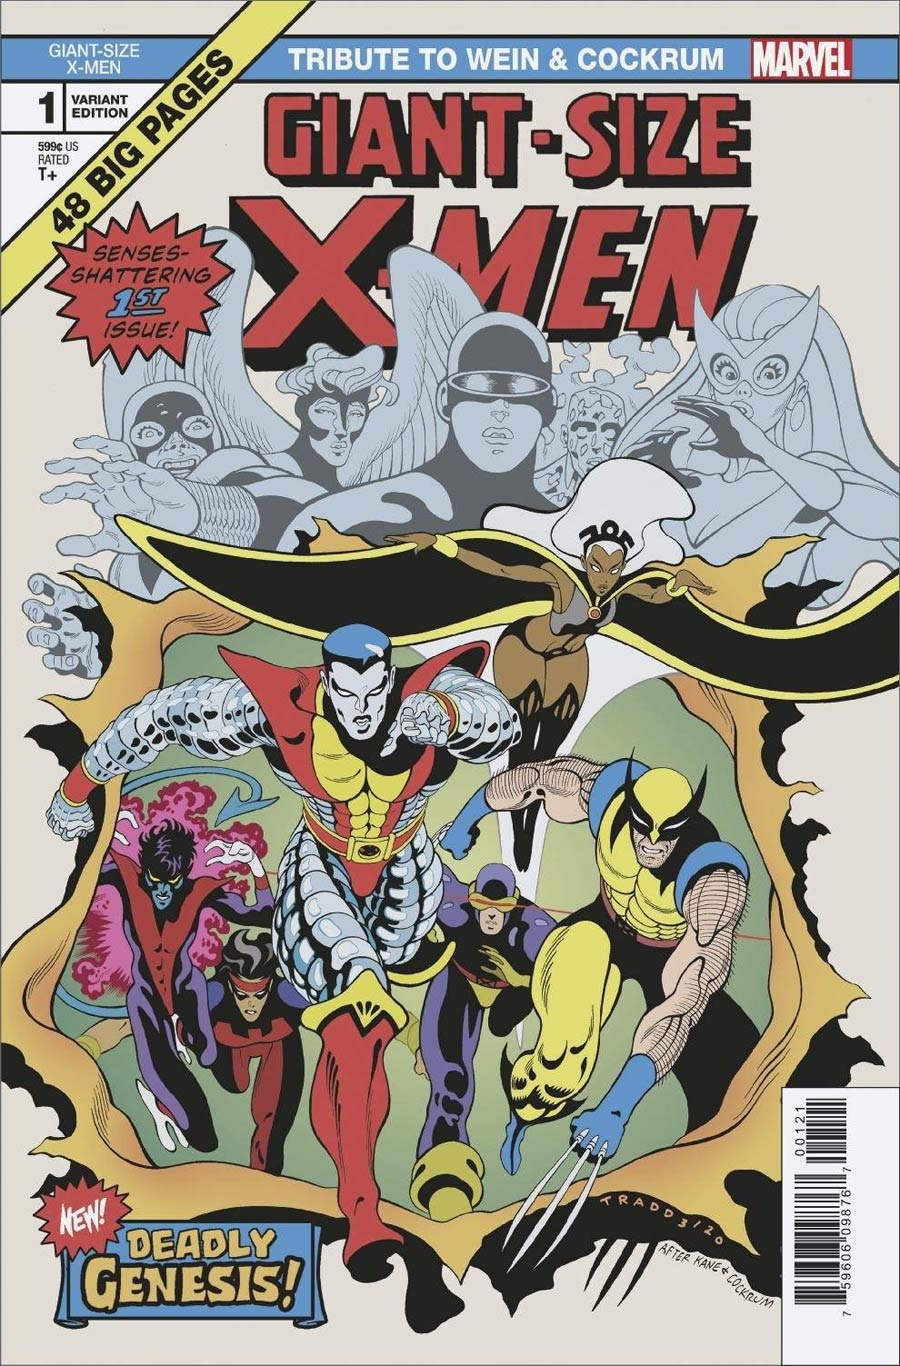 Giant-Size X-Men Tribute To Len Wein & Dave Cockrum One Shot Cover B Variant Tradd Moore Cover